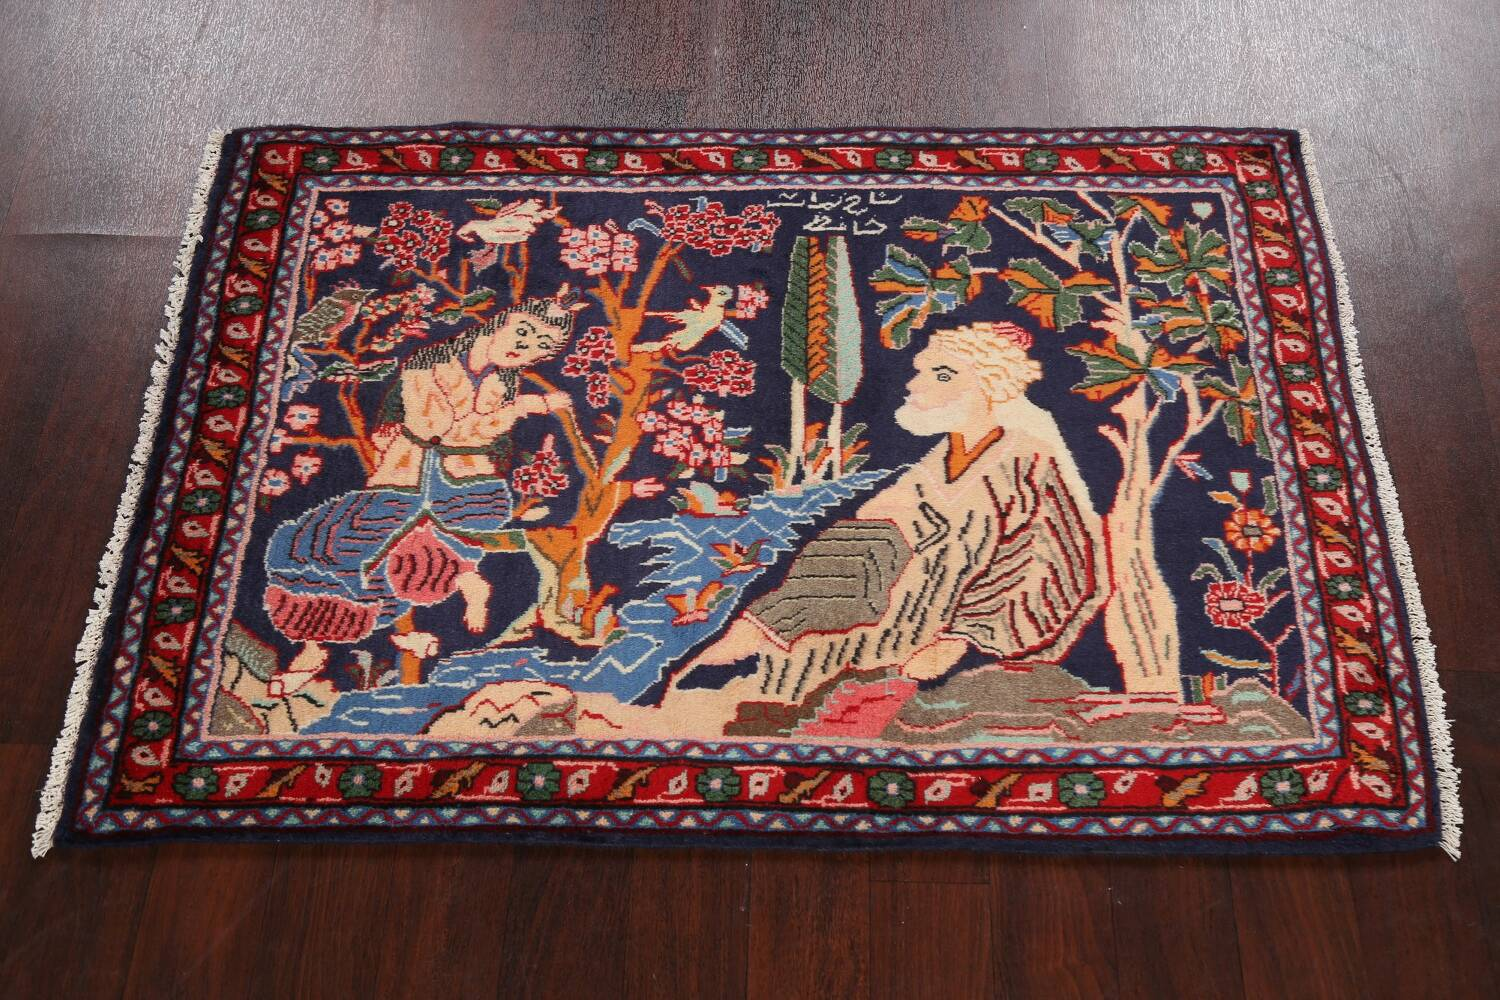 Pictorial Kashmar Persian Area Rug 3x5 image 3